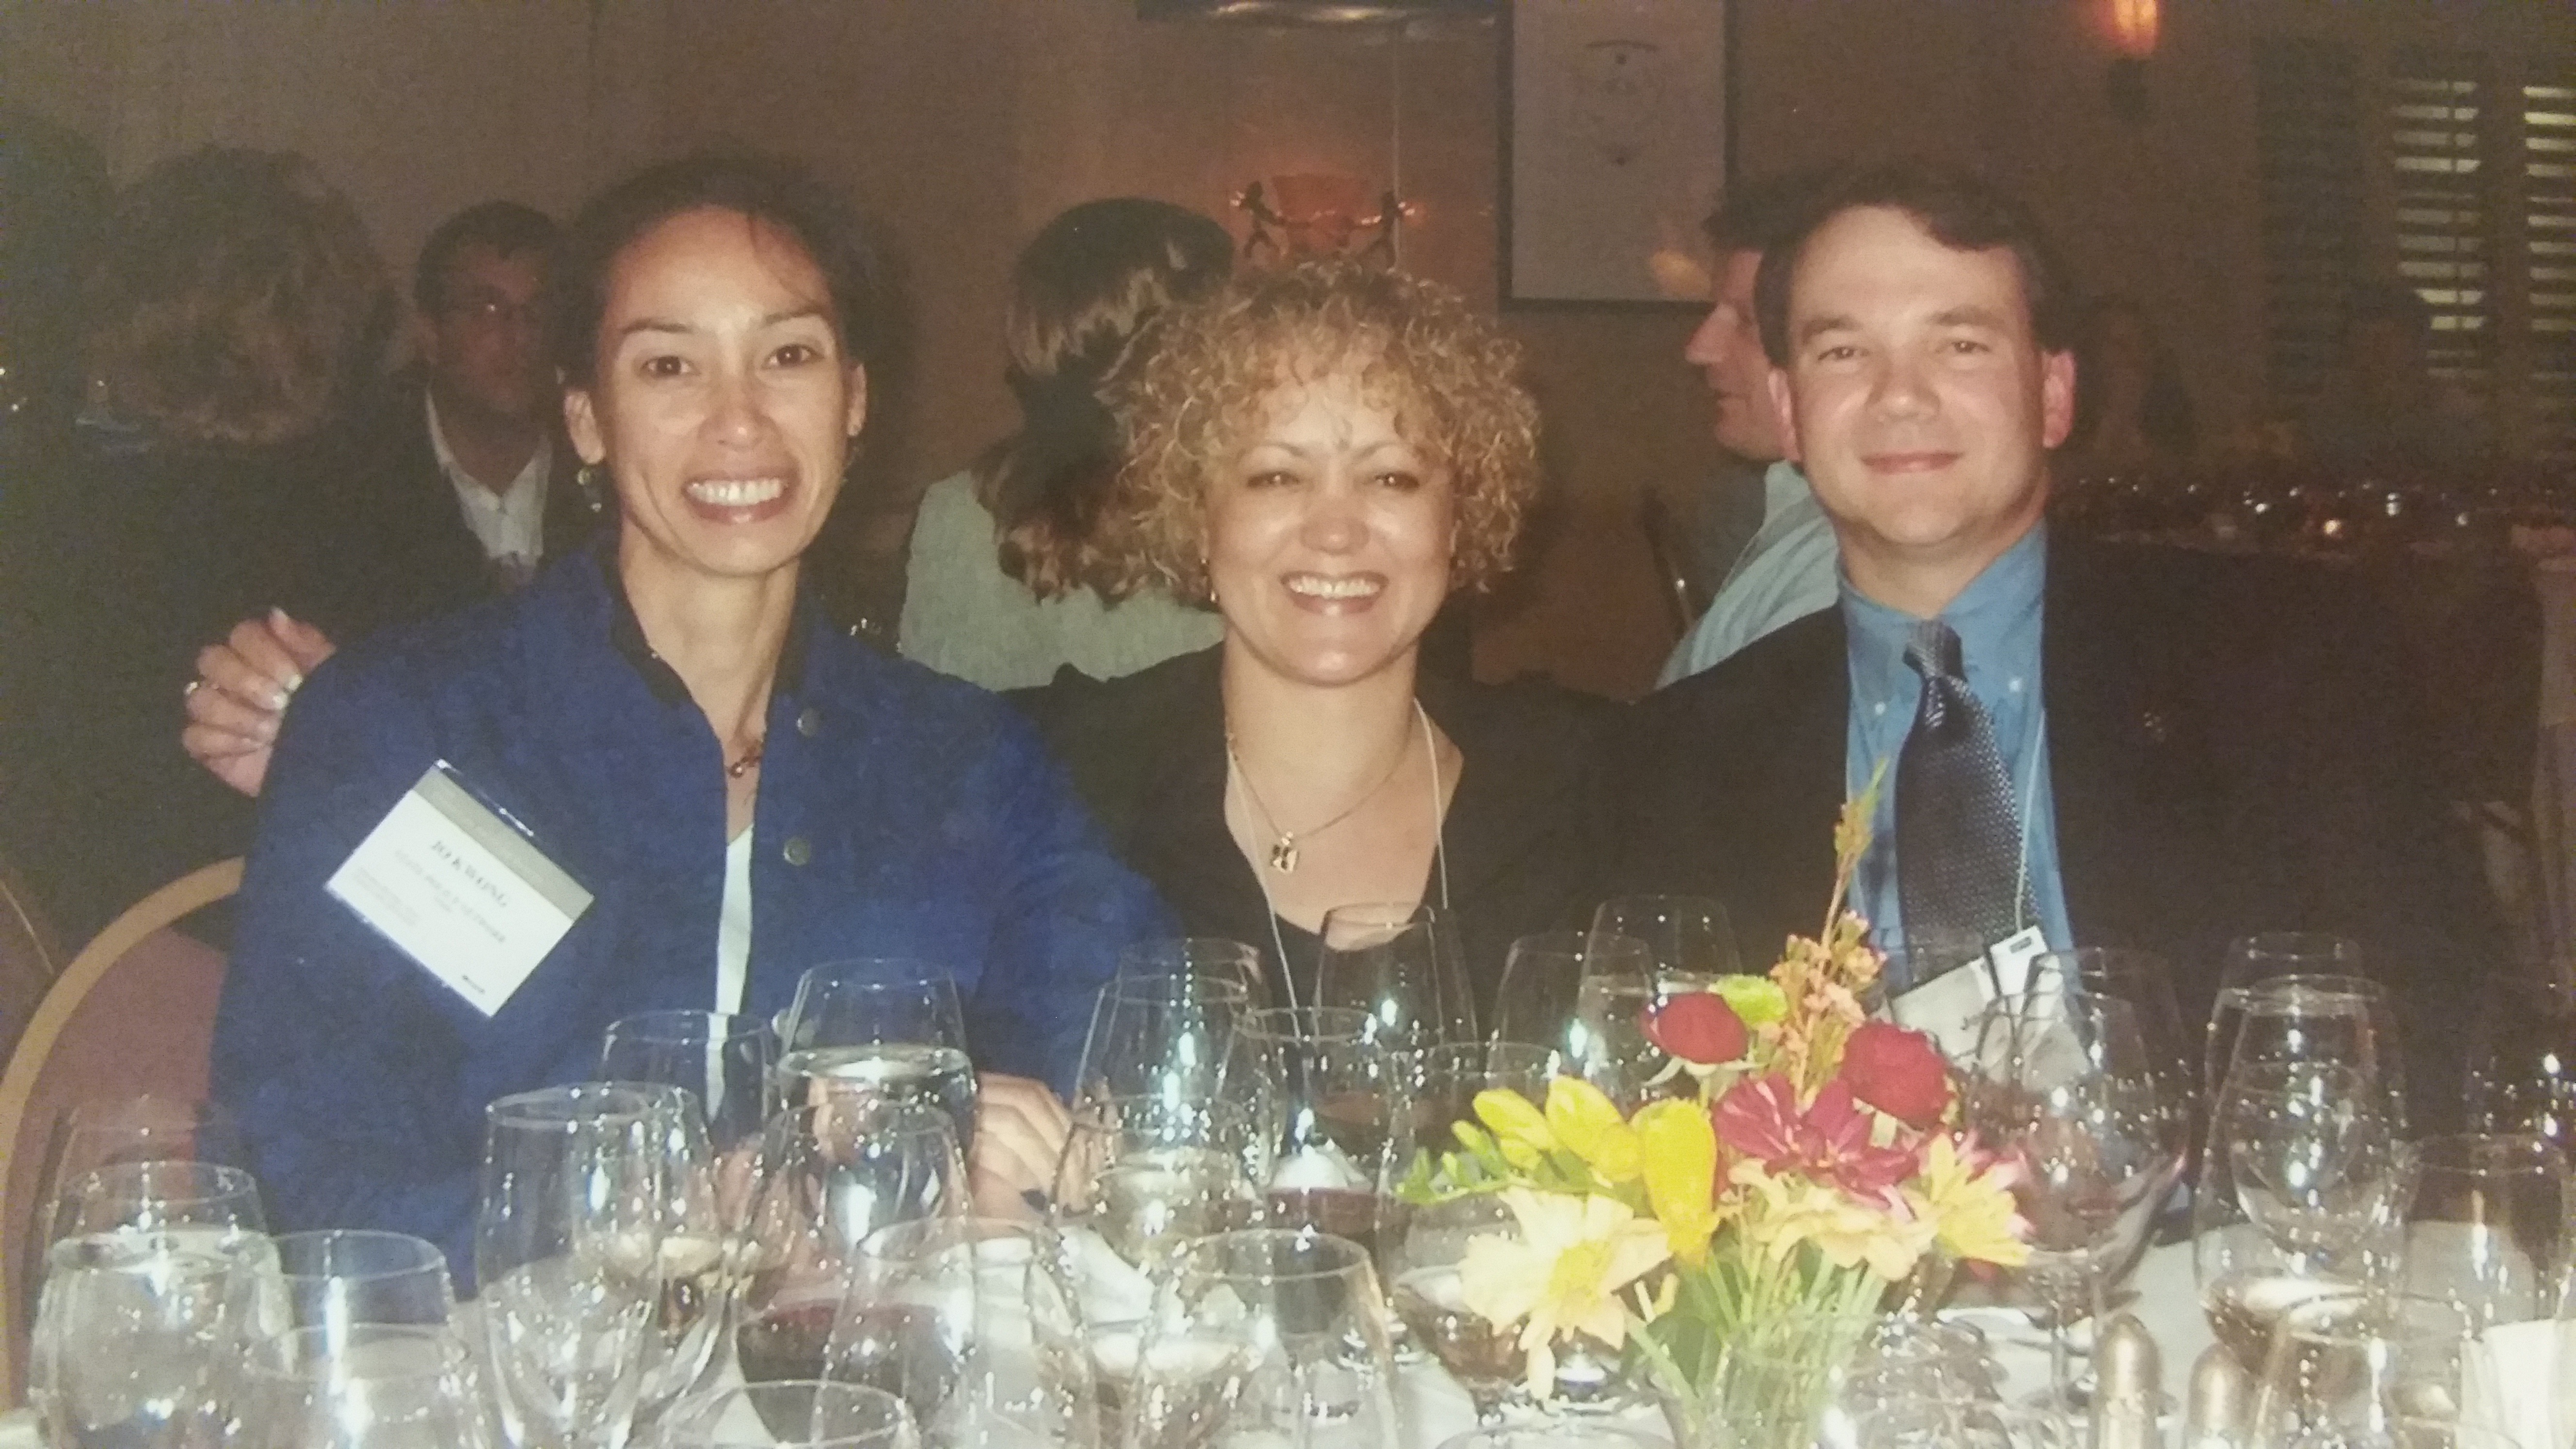 Think tanks, the early days: I met Jo Kwong of the Atlas Foundation (left) and Joe Lehman of the Mackinac Center at my first SPN conference in 2003.